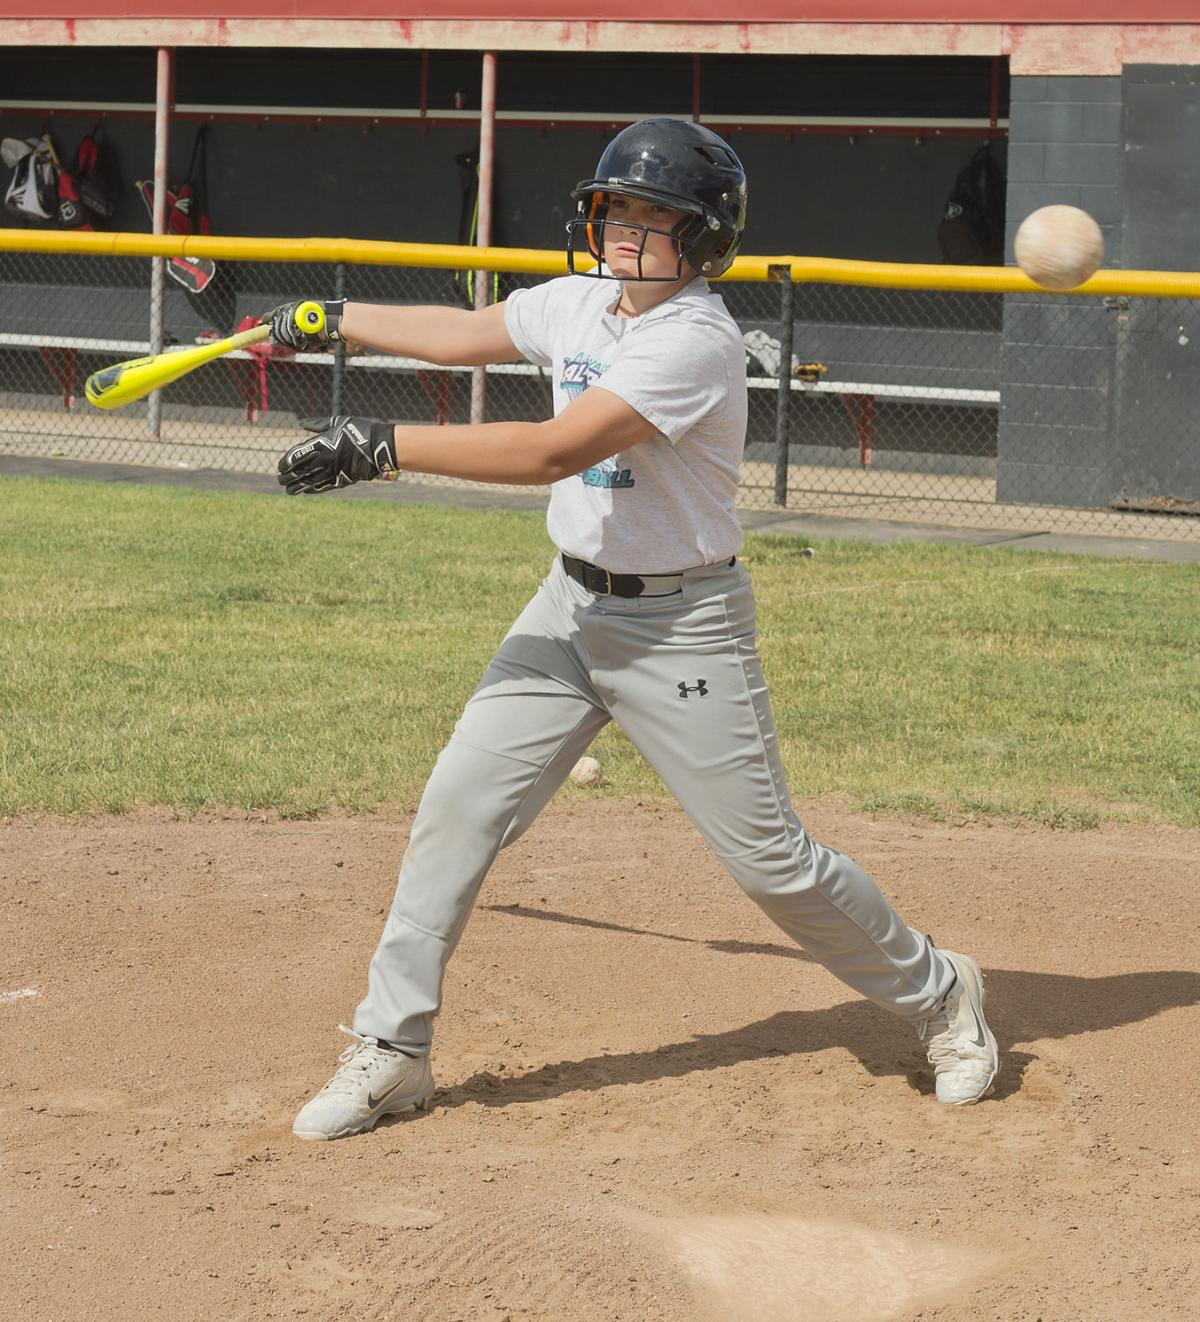 CONTACT SWING